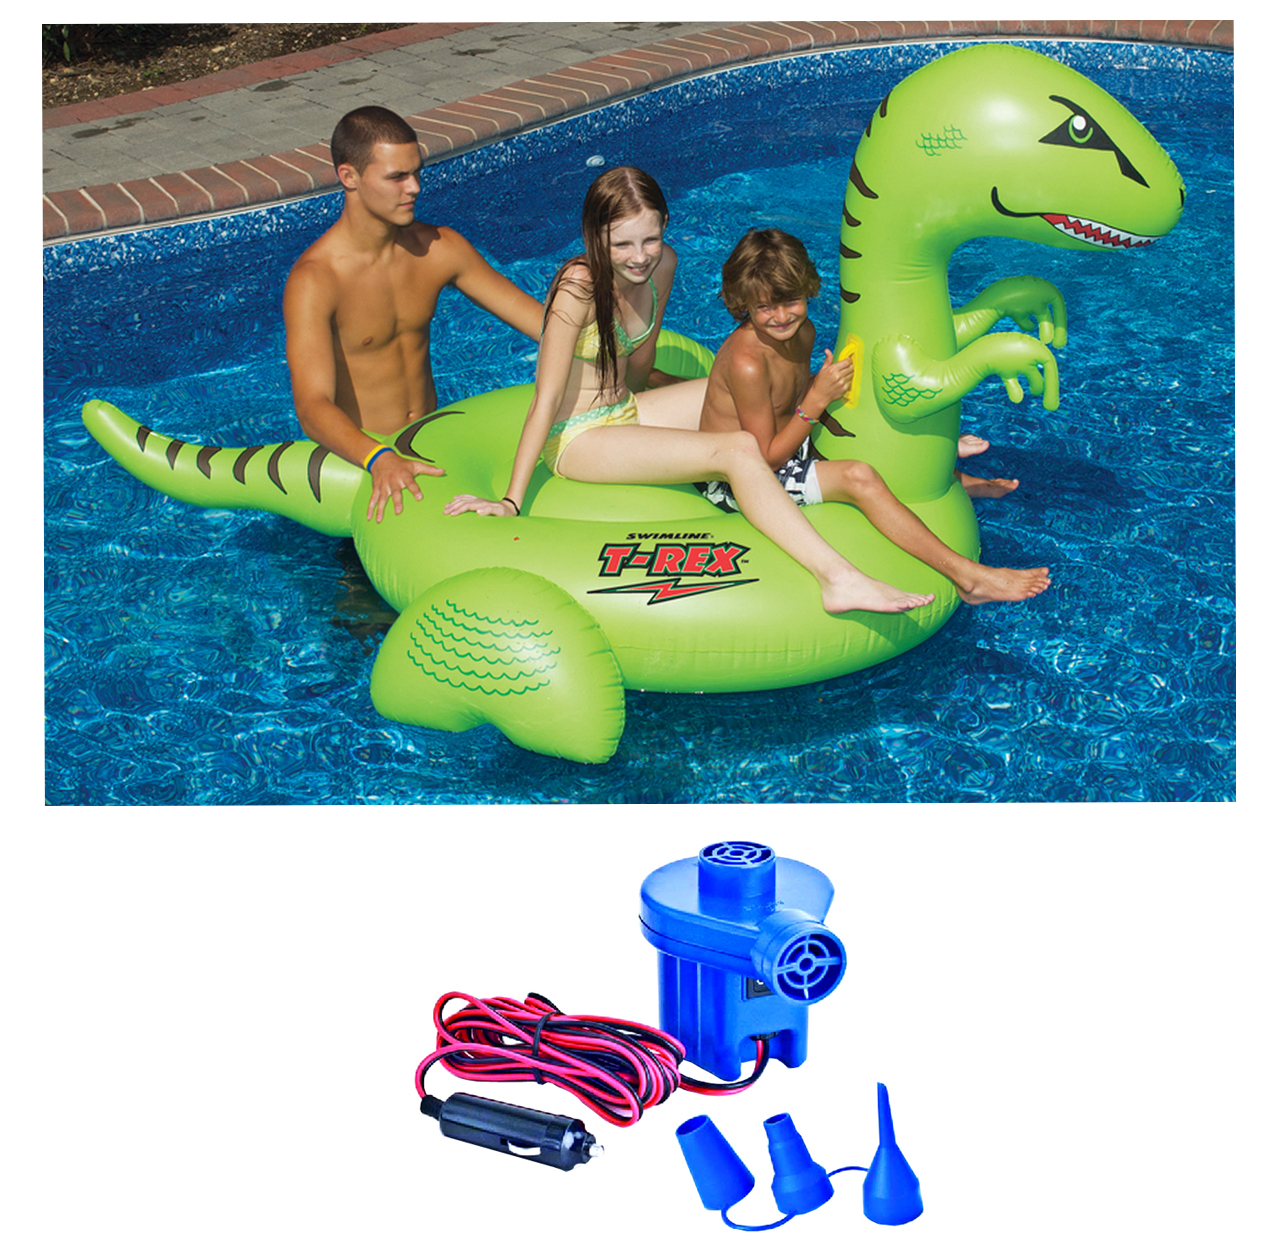 Swimline 90624 Pool Kids Giant Dinosaur Inflatable Float Toy w/ 12 Volt Air Pump